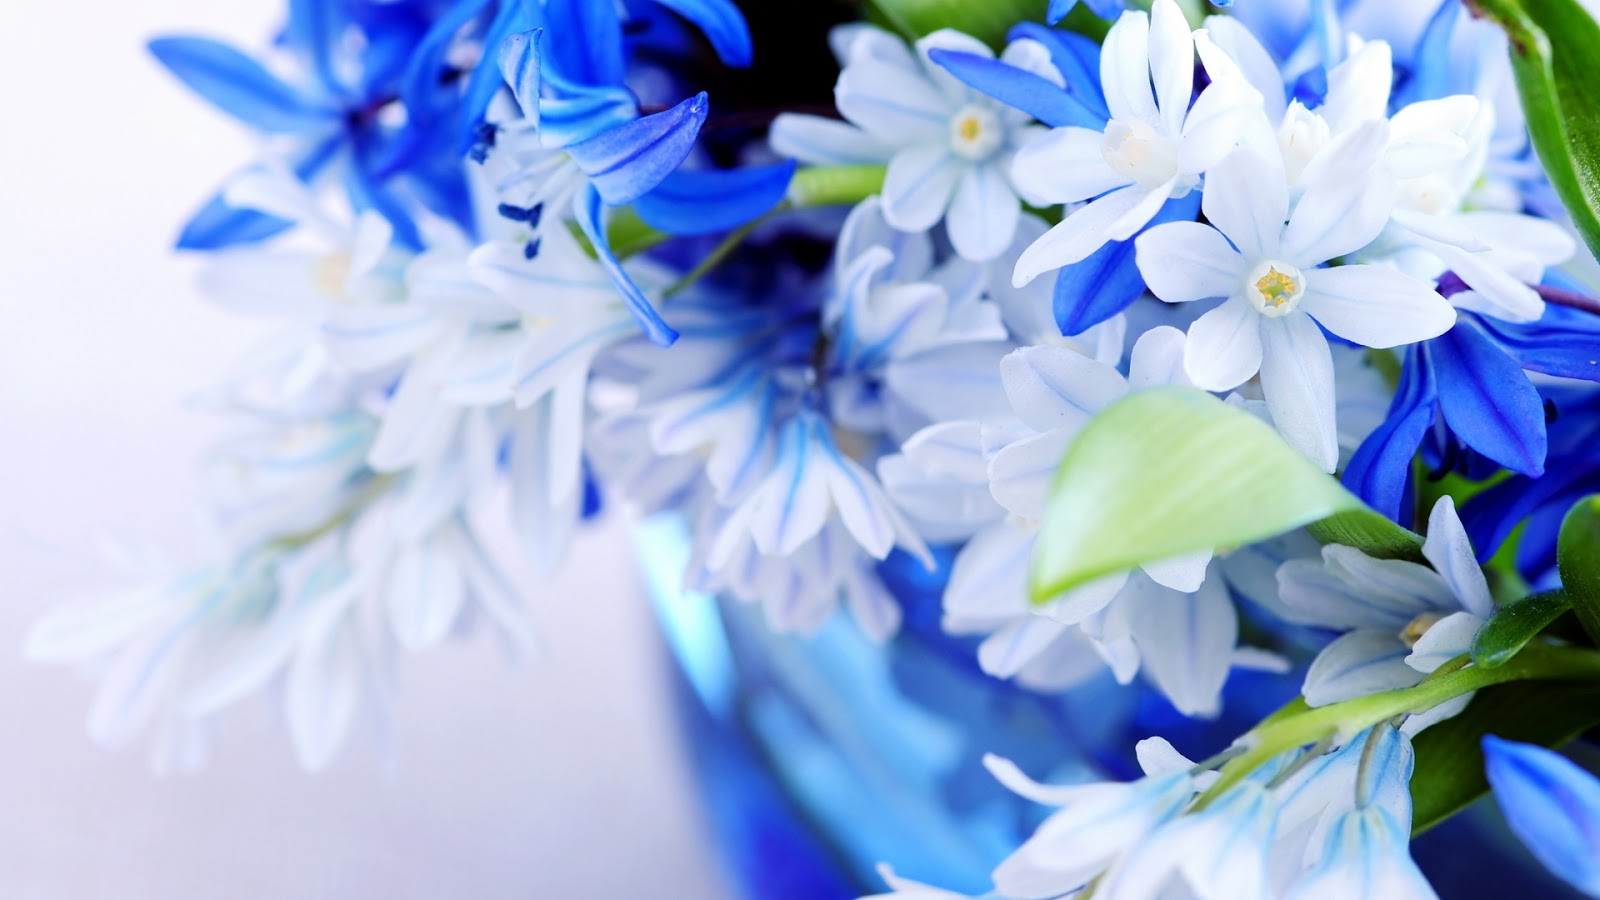 flowers for flower lovers Beautiful flowers desktop wallpapers 1600x900